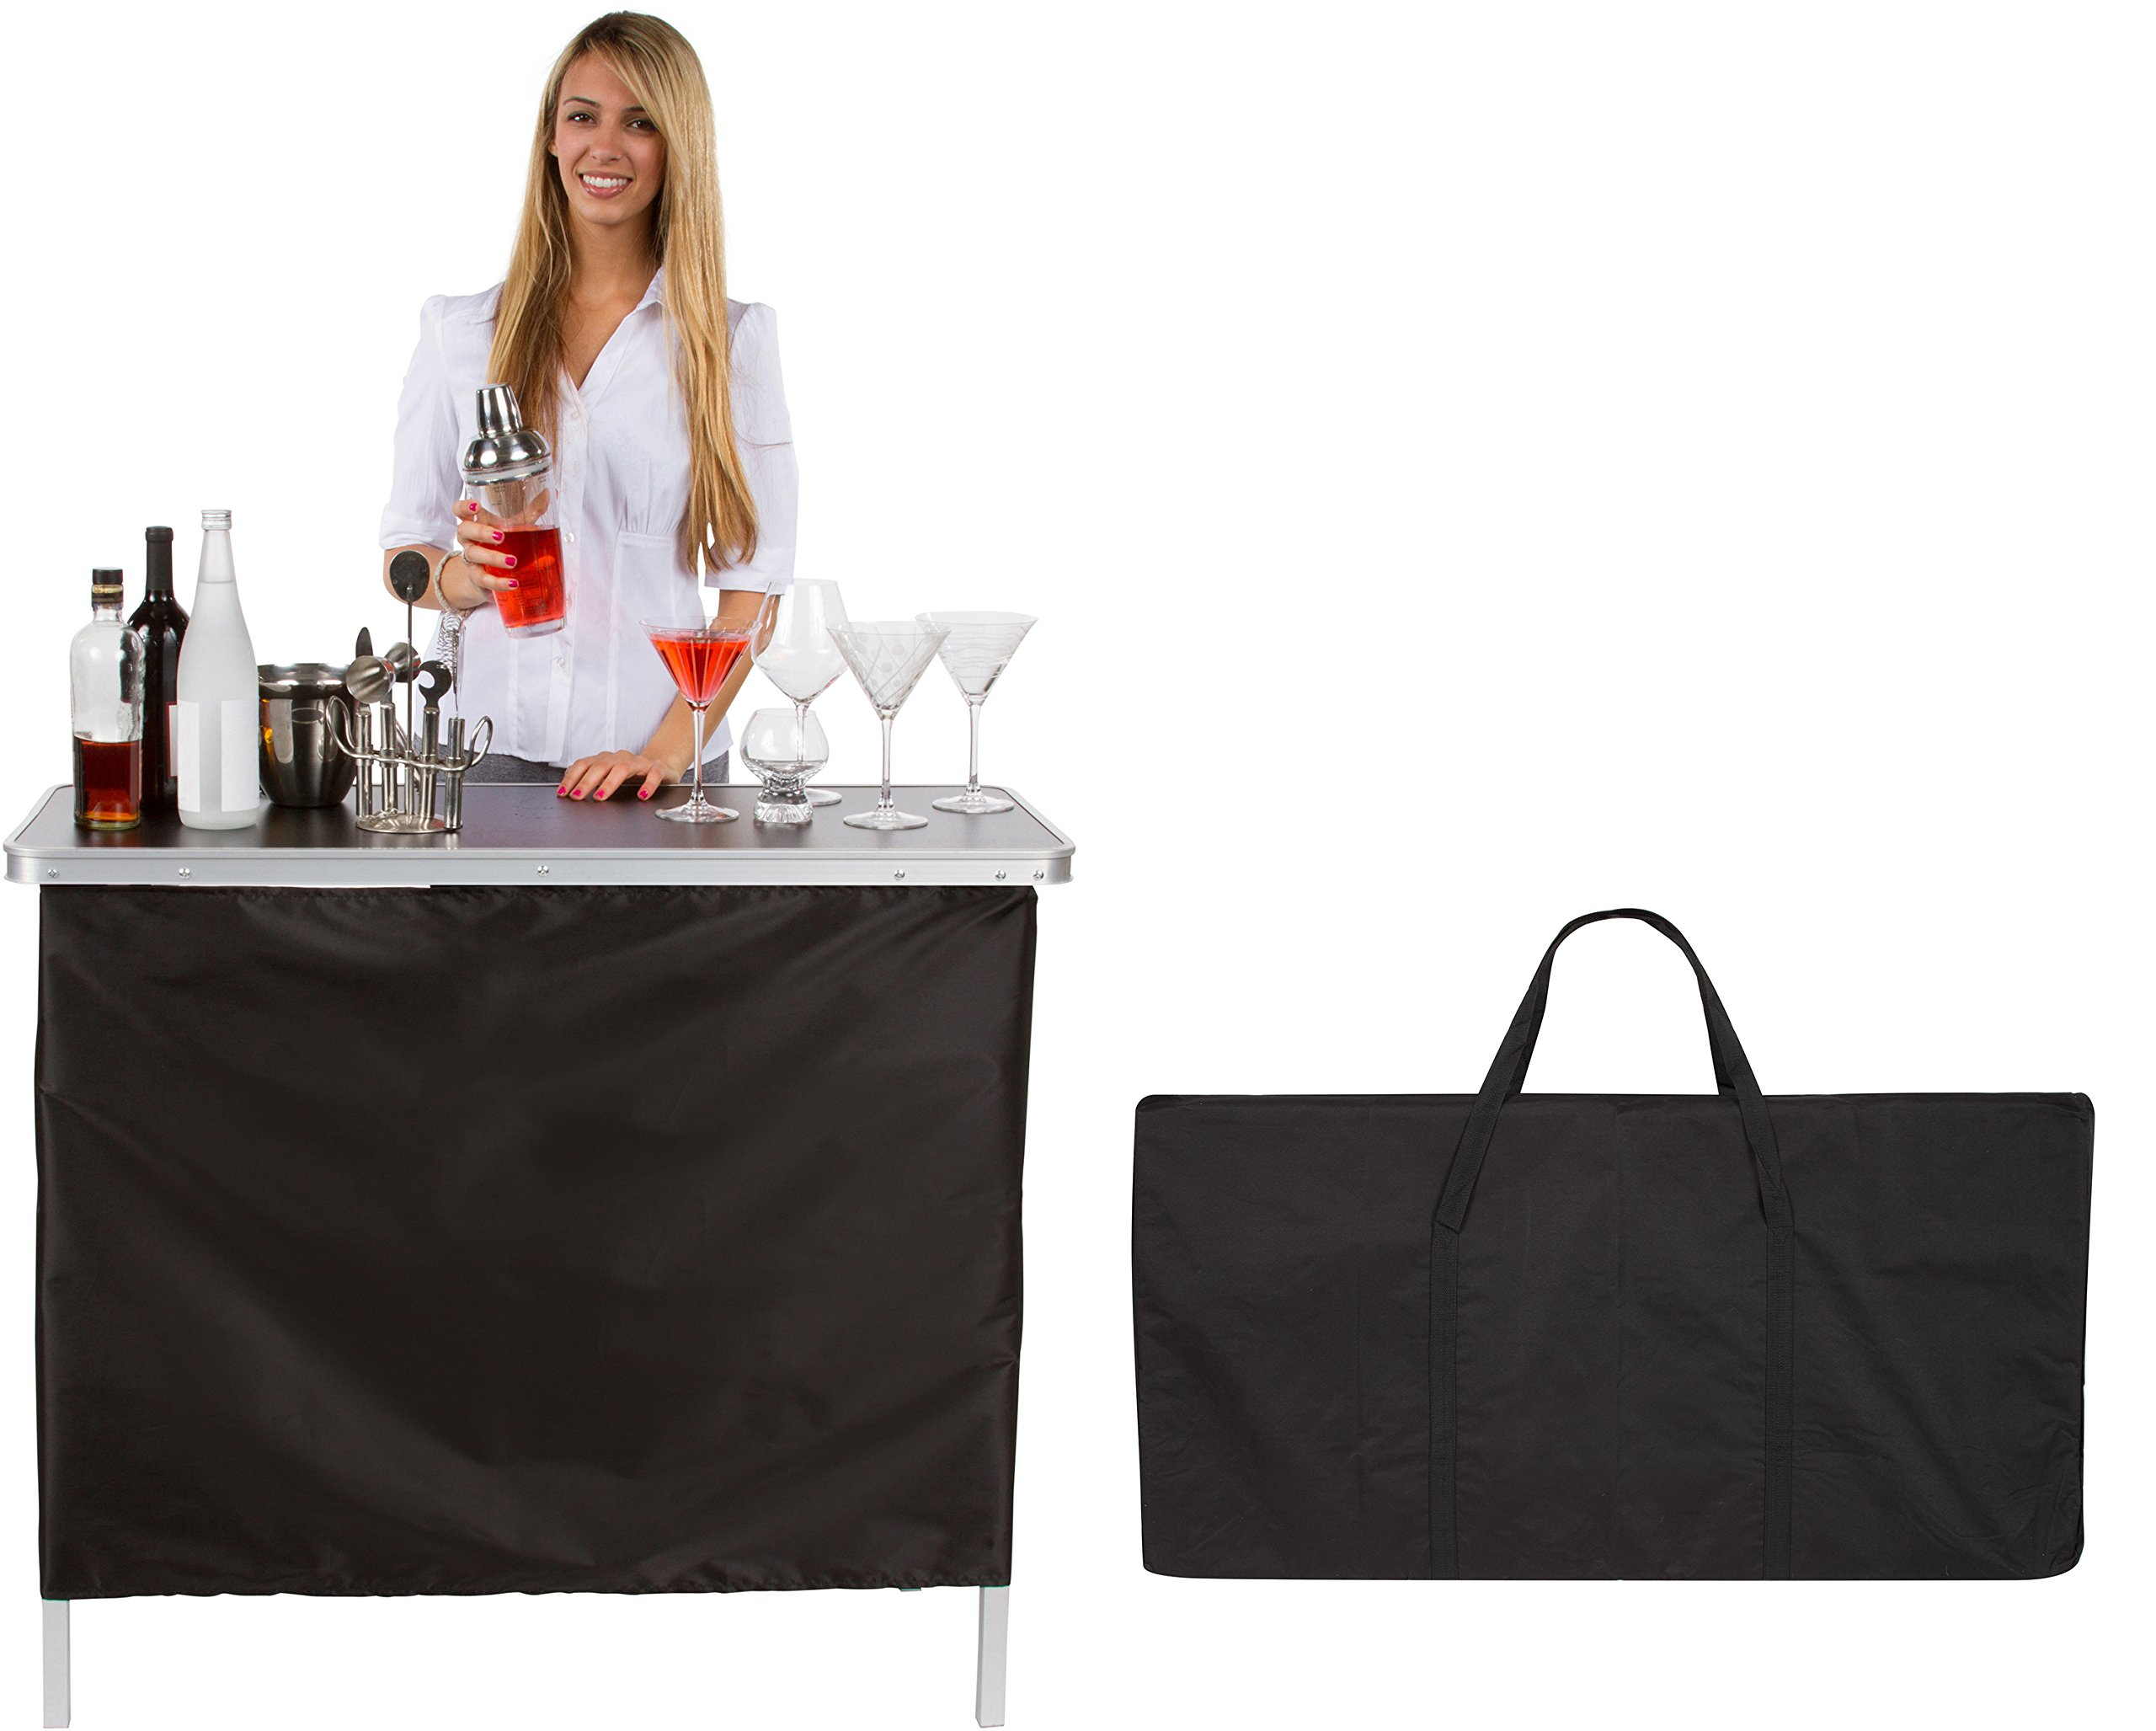 Trademark Innovations Portable Bar Table - Two Skirts Included By (Green and Black Skirts)